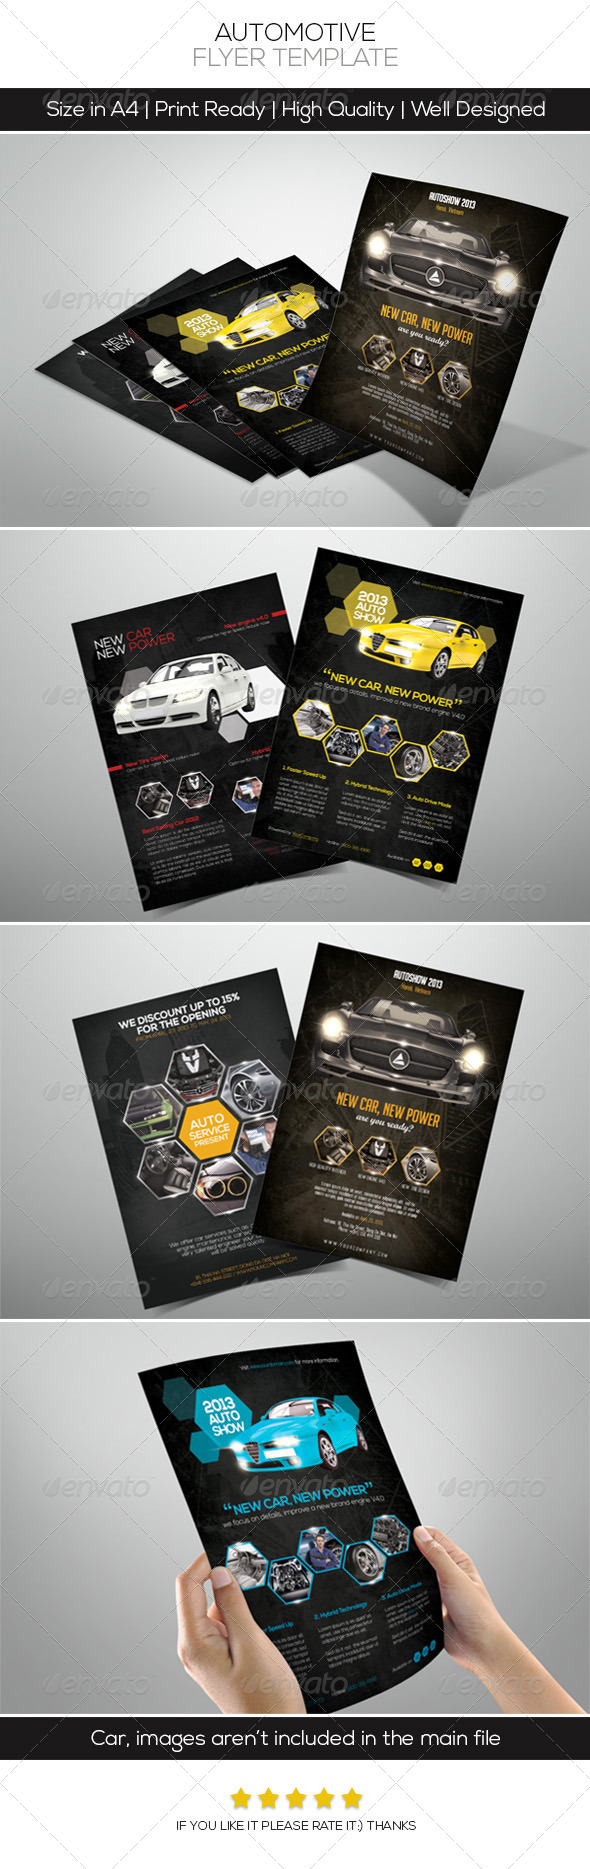 Premium Automotive Flyers - Commerce Flyers